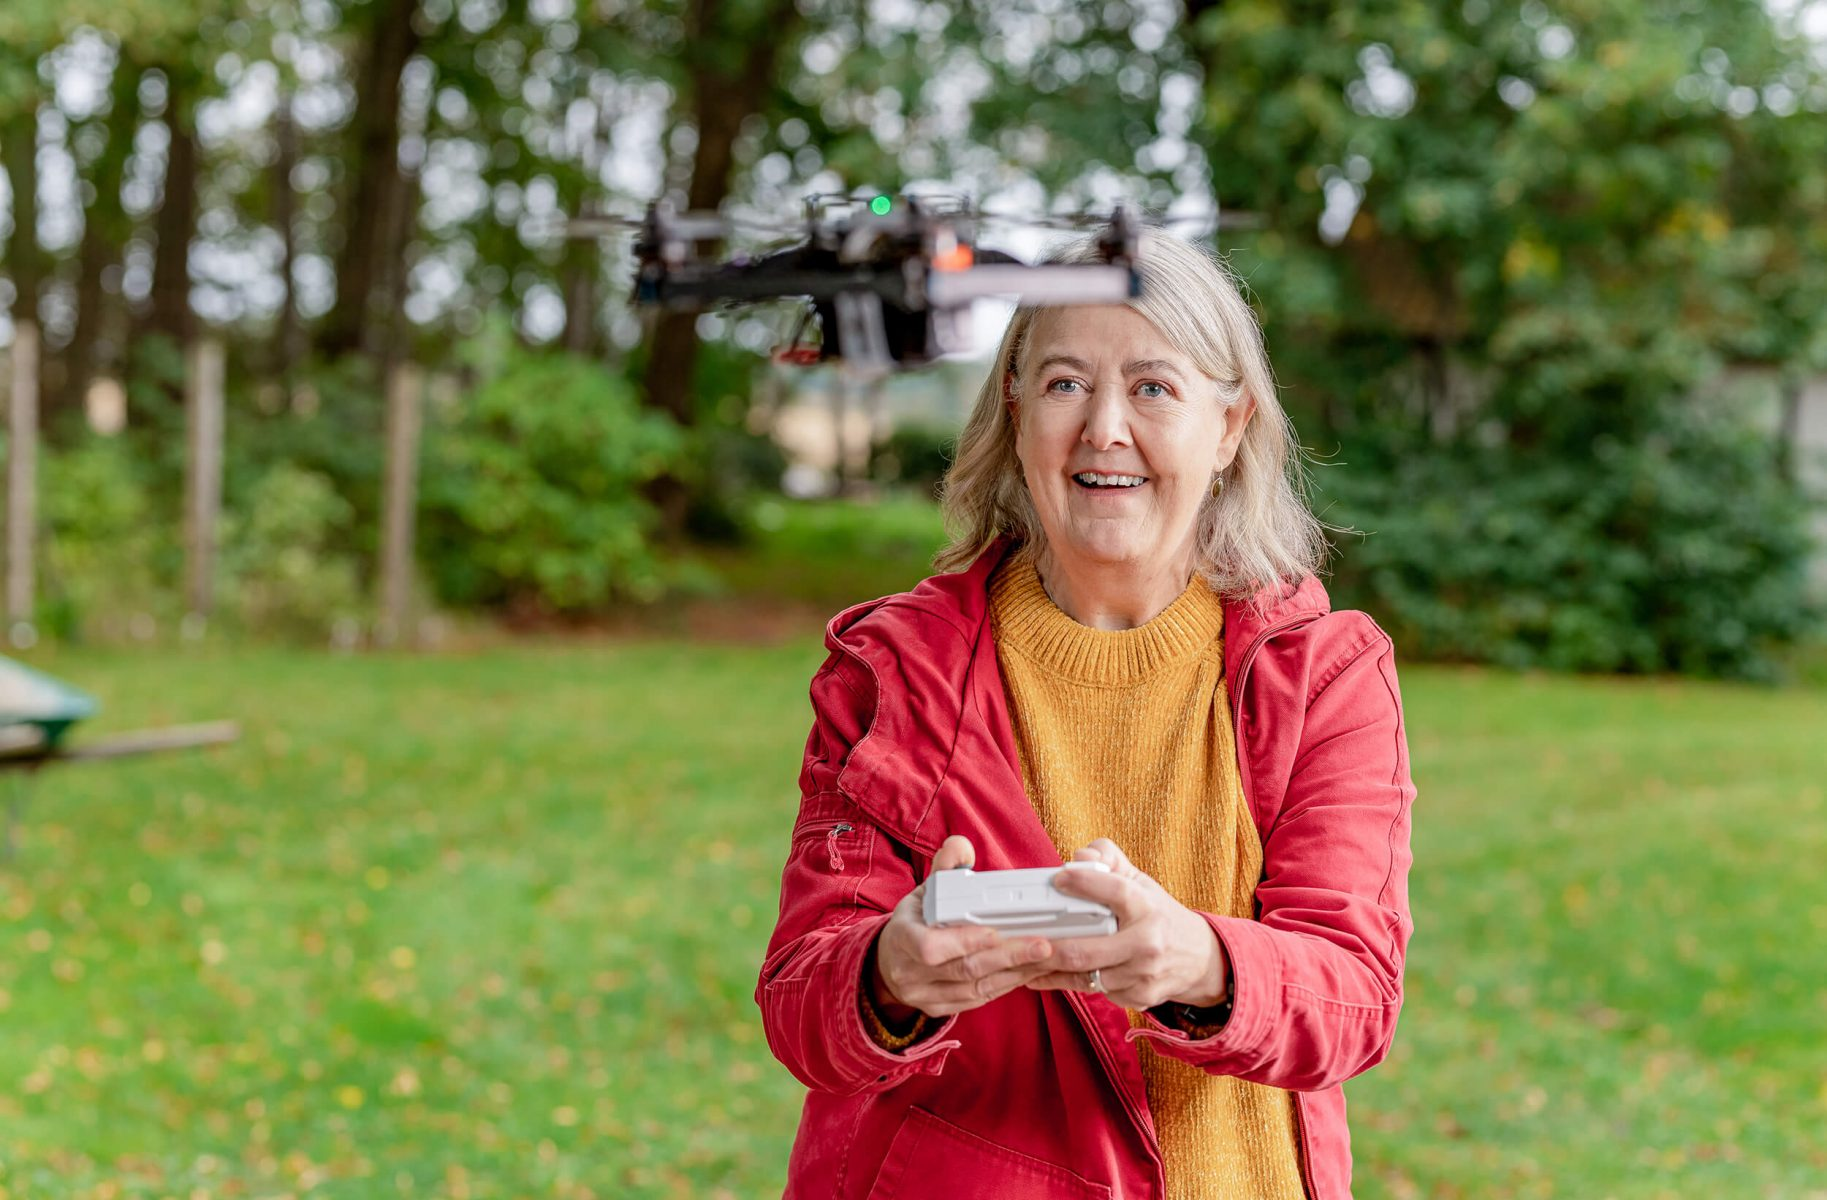 Happy lady in the garden flying drone.